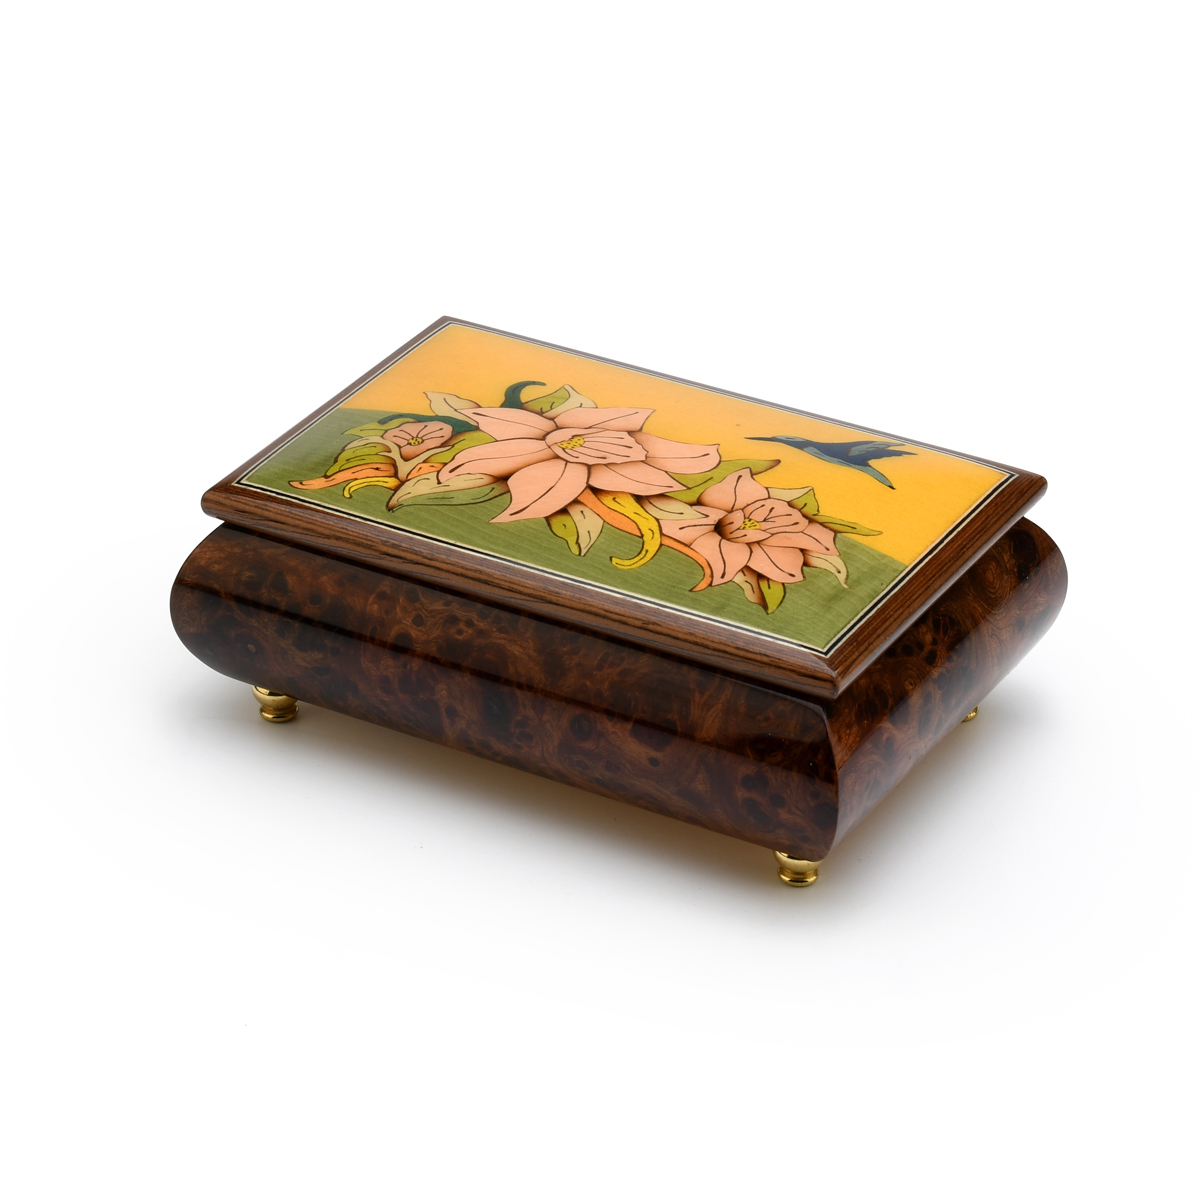 Handcrafted 23 Note Tropical Theme Inlay Music Box with Hummingbird and Floral Design